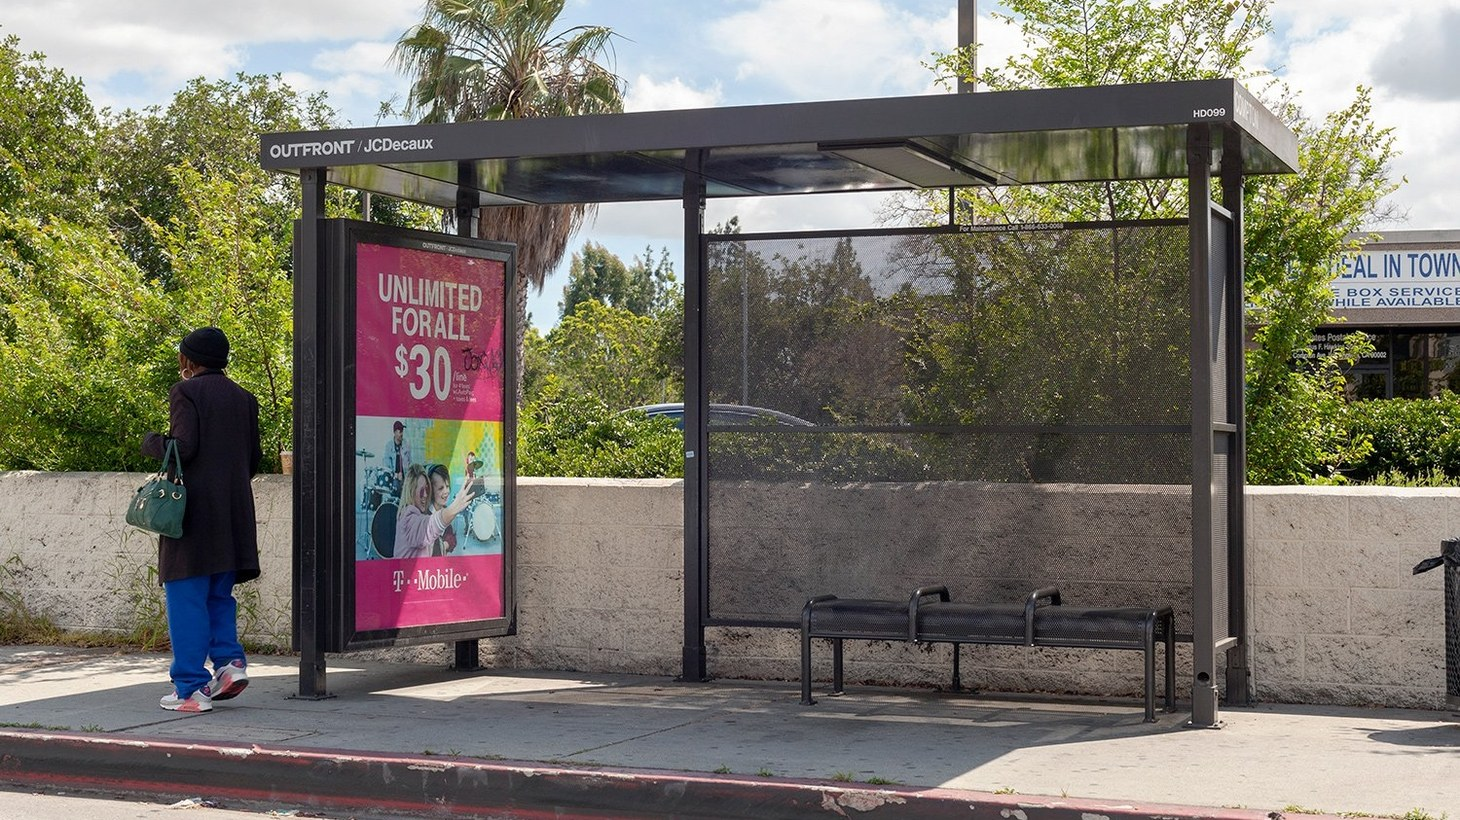 Bus shelters are installed and maintained by the company that controls the ad rights.